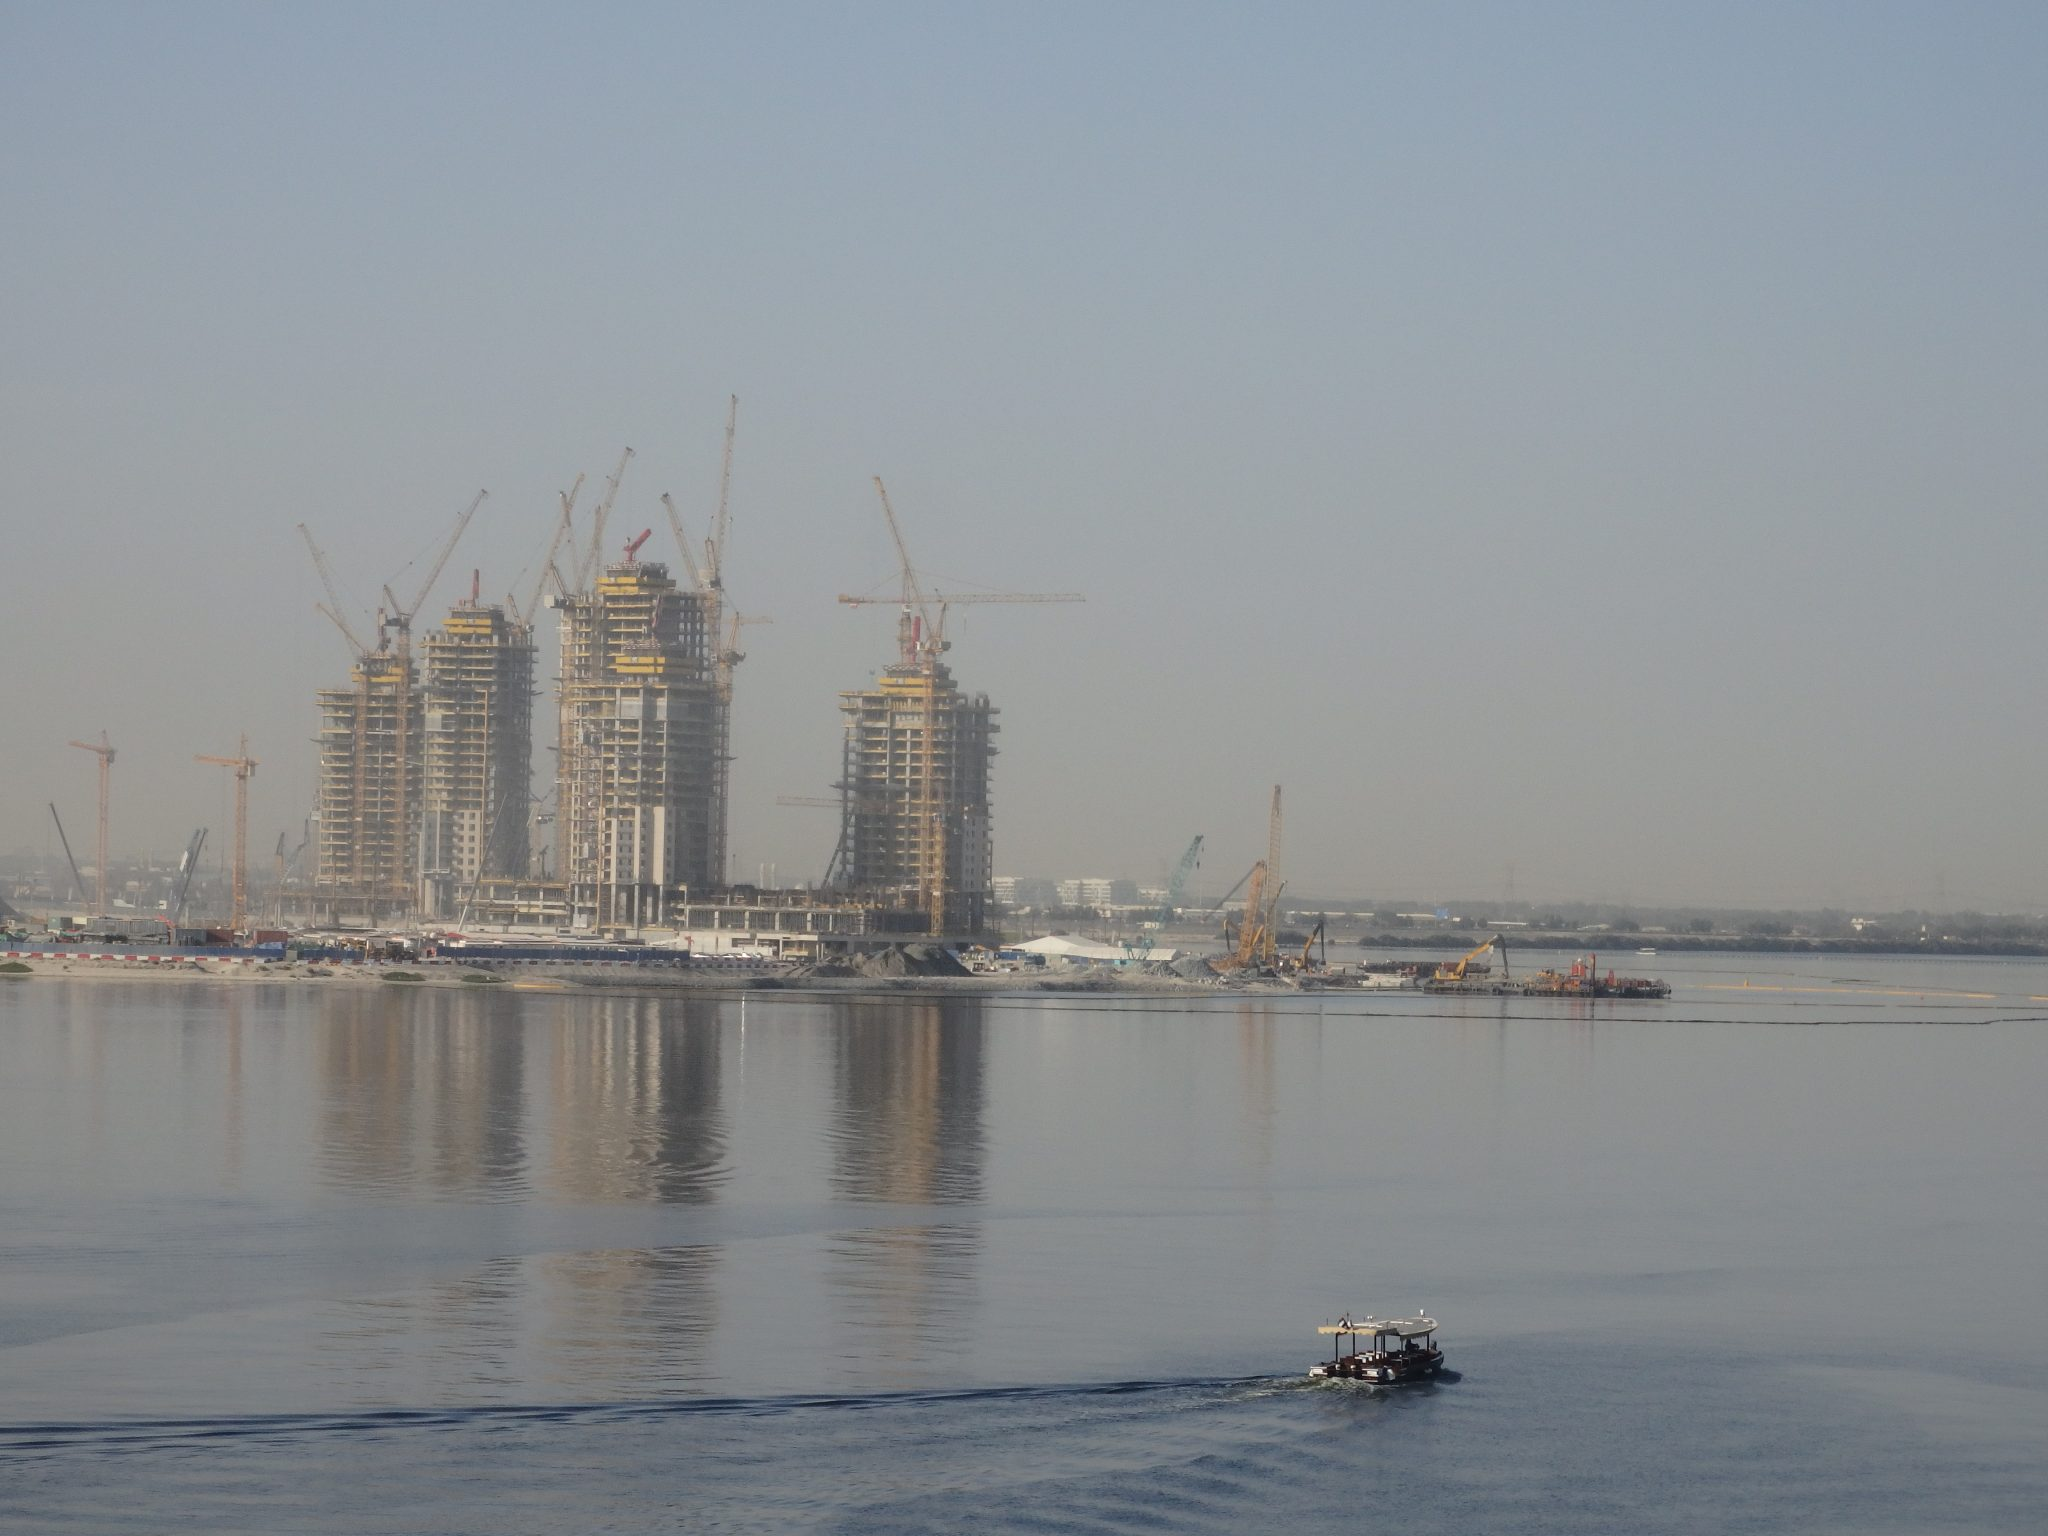 Construction has begun at the Tower at Dubai Creek